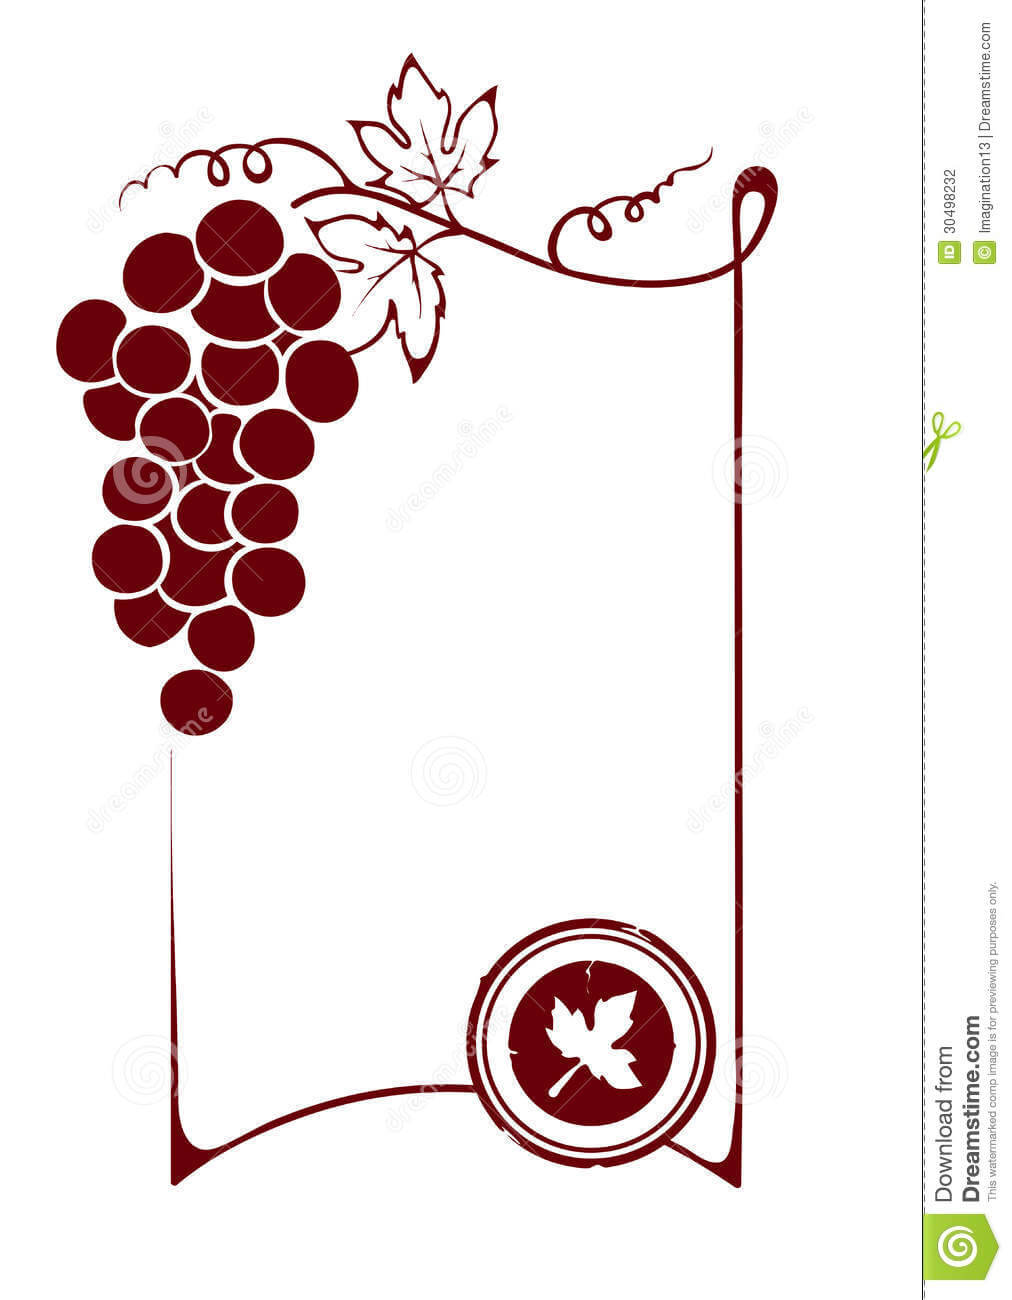 The Blank Wine Label Stock Vector. Illustration Of Decor Within Blank Wine Label Template